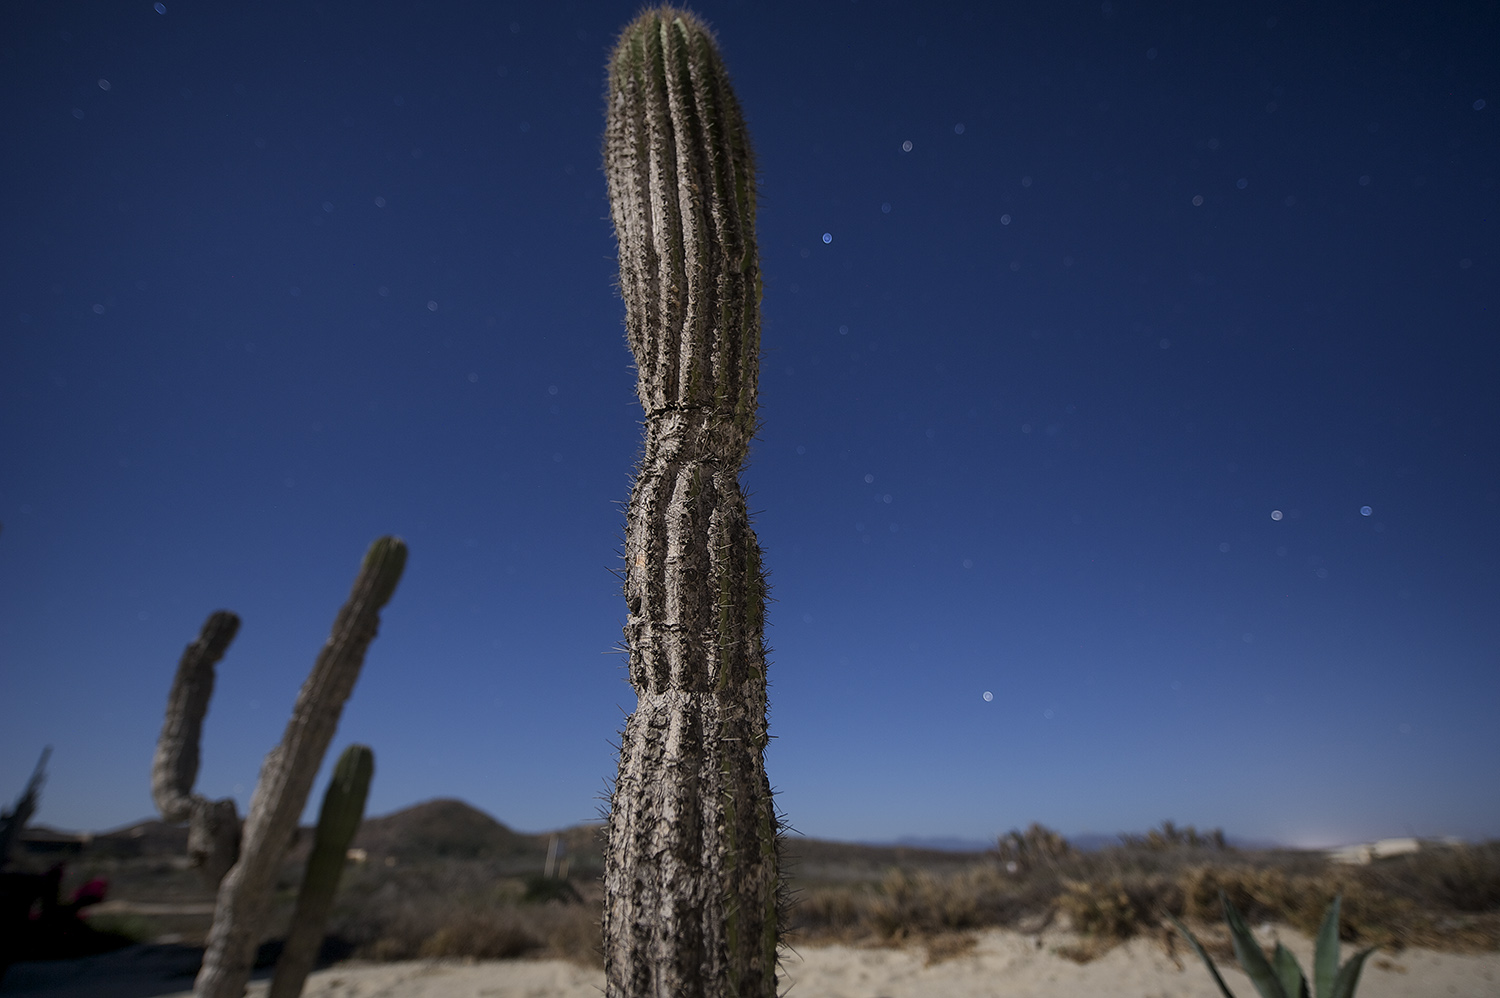 Midnight Cactus & Full Moon Light